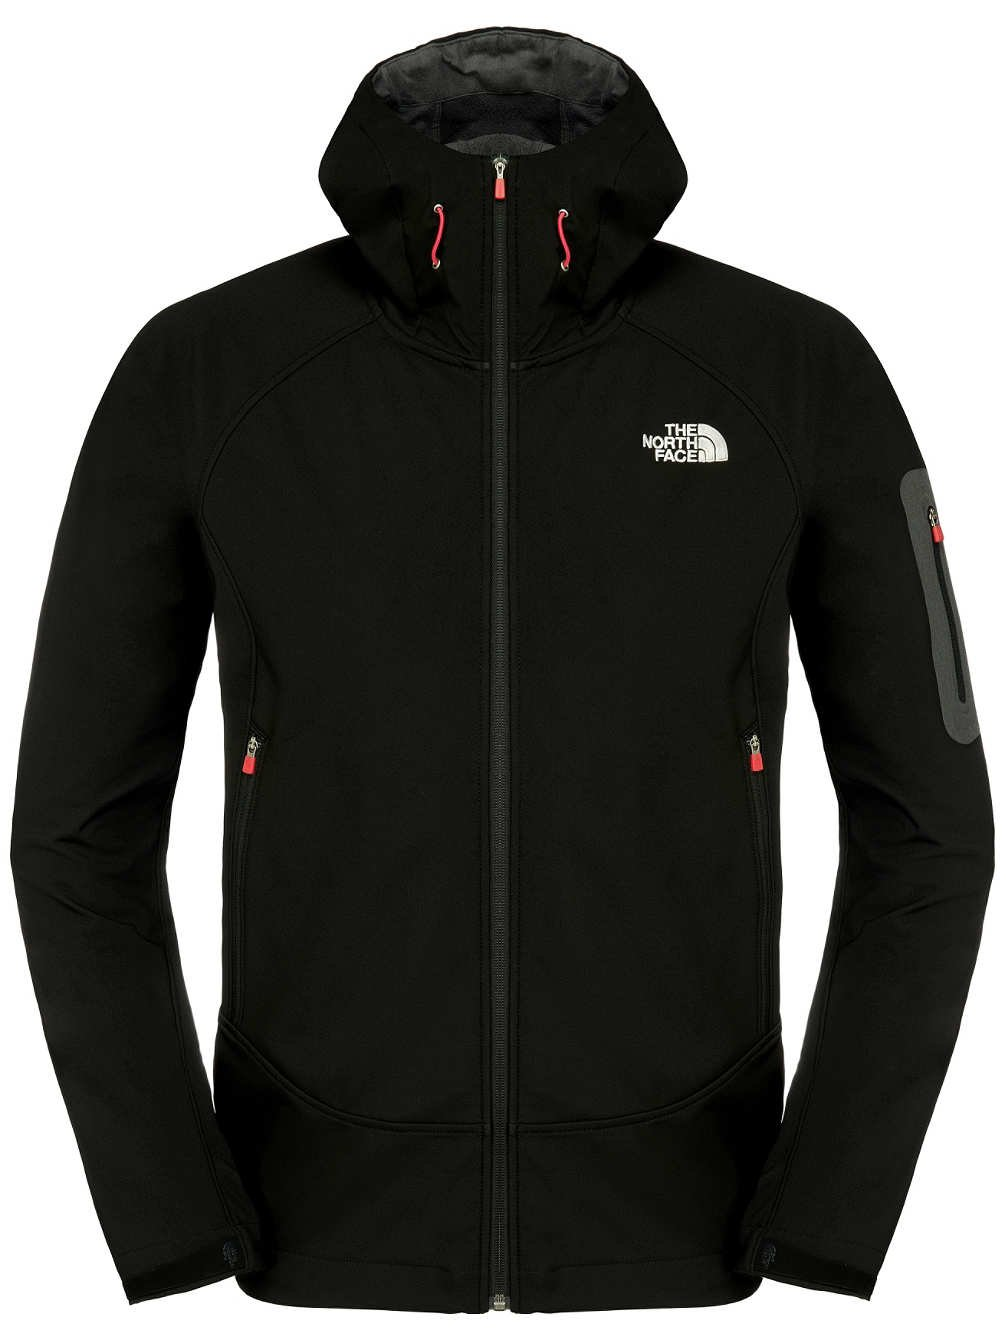 THE NORTH FACE Herren Softshelljacke Valkyrie online kaufen